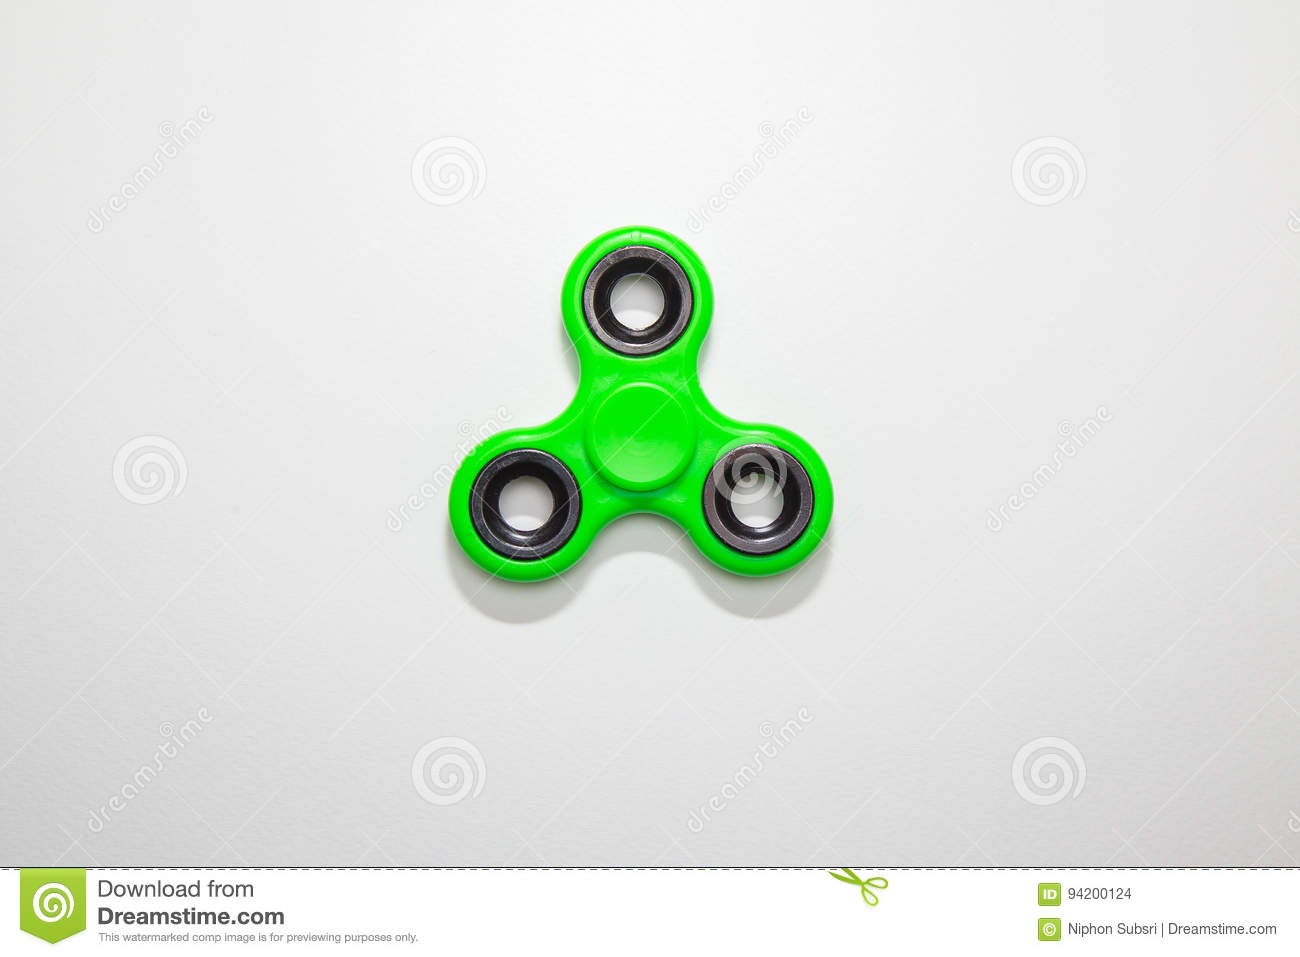 Green Fidget finger spinner toy image